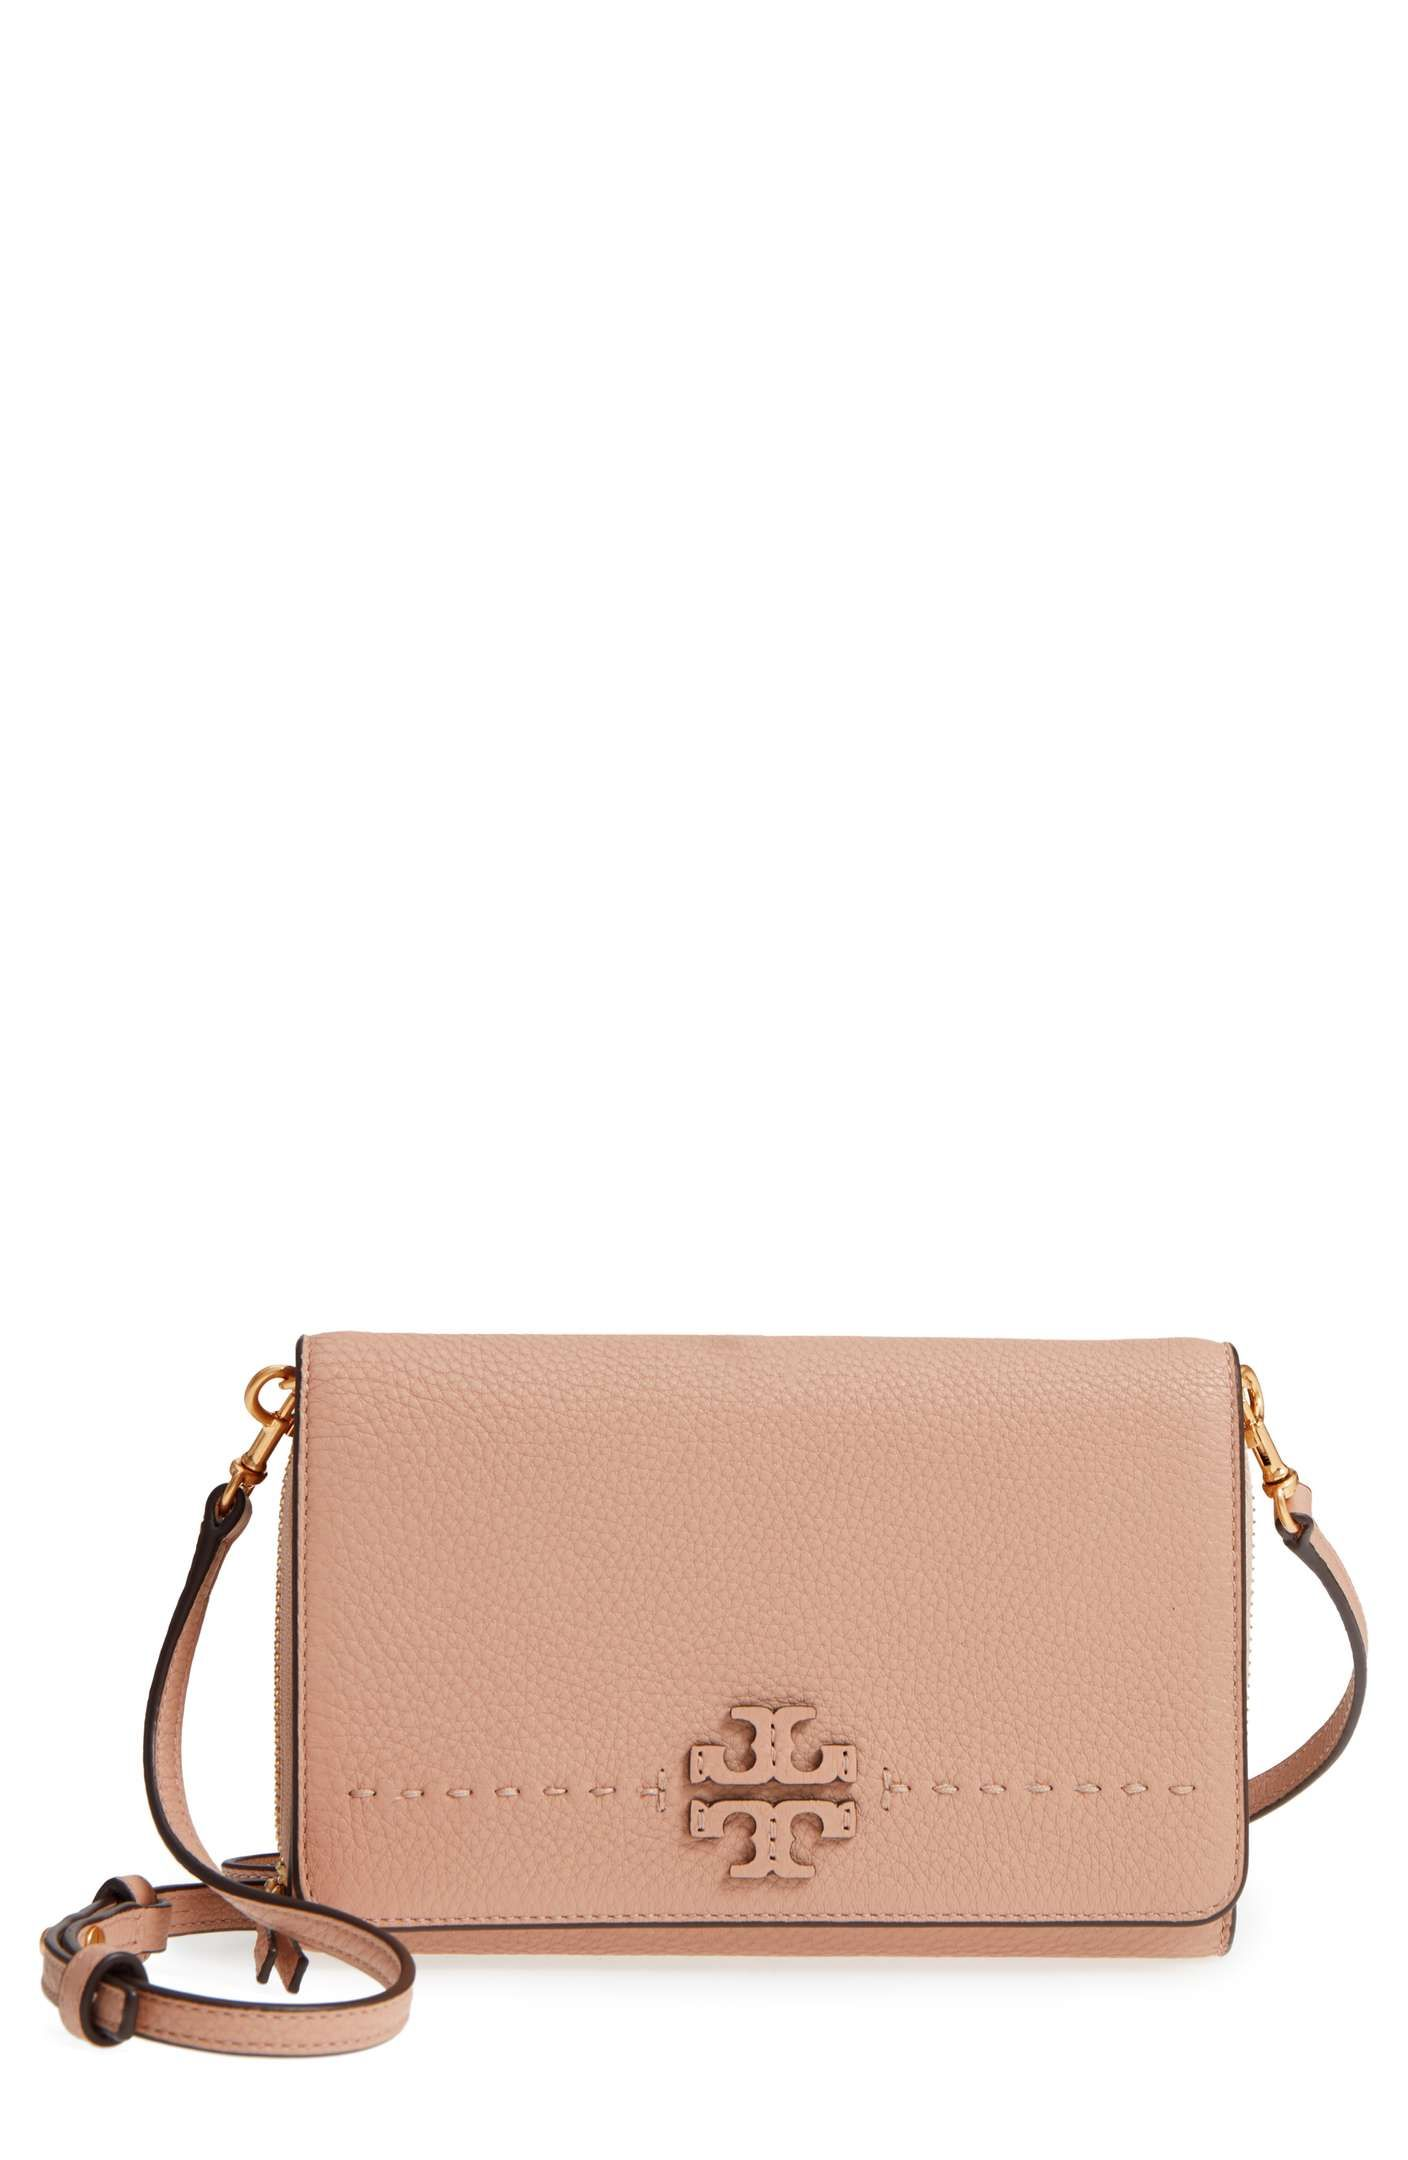 65a5e486c74 Main Image - Tory Burch McGraw Leather Crossbody Wallet